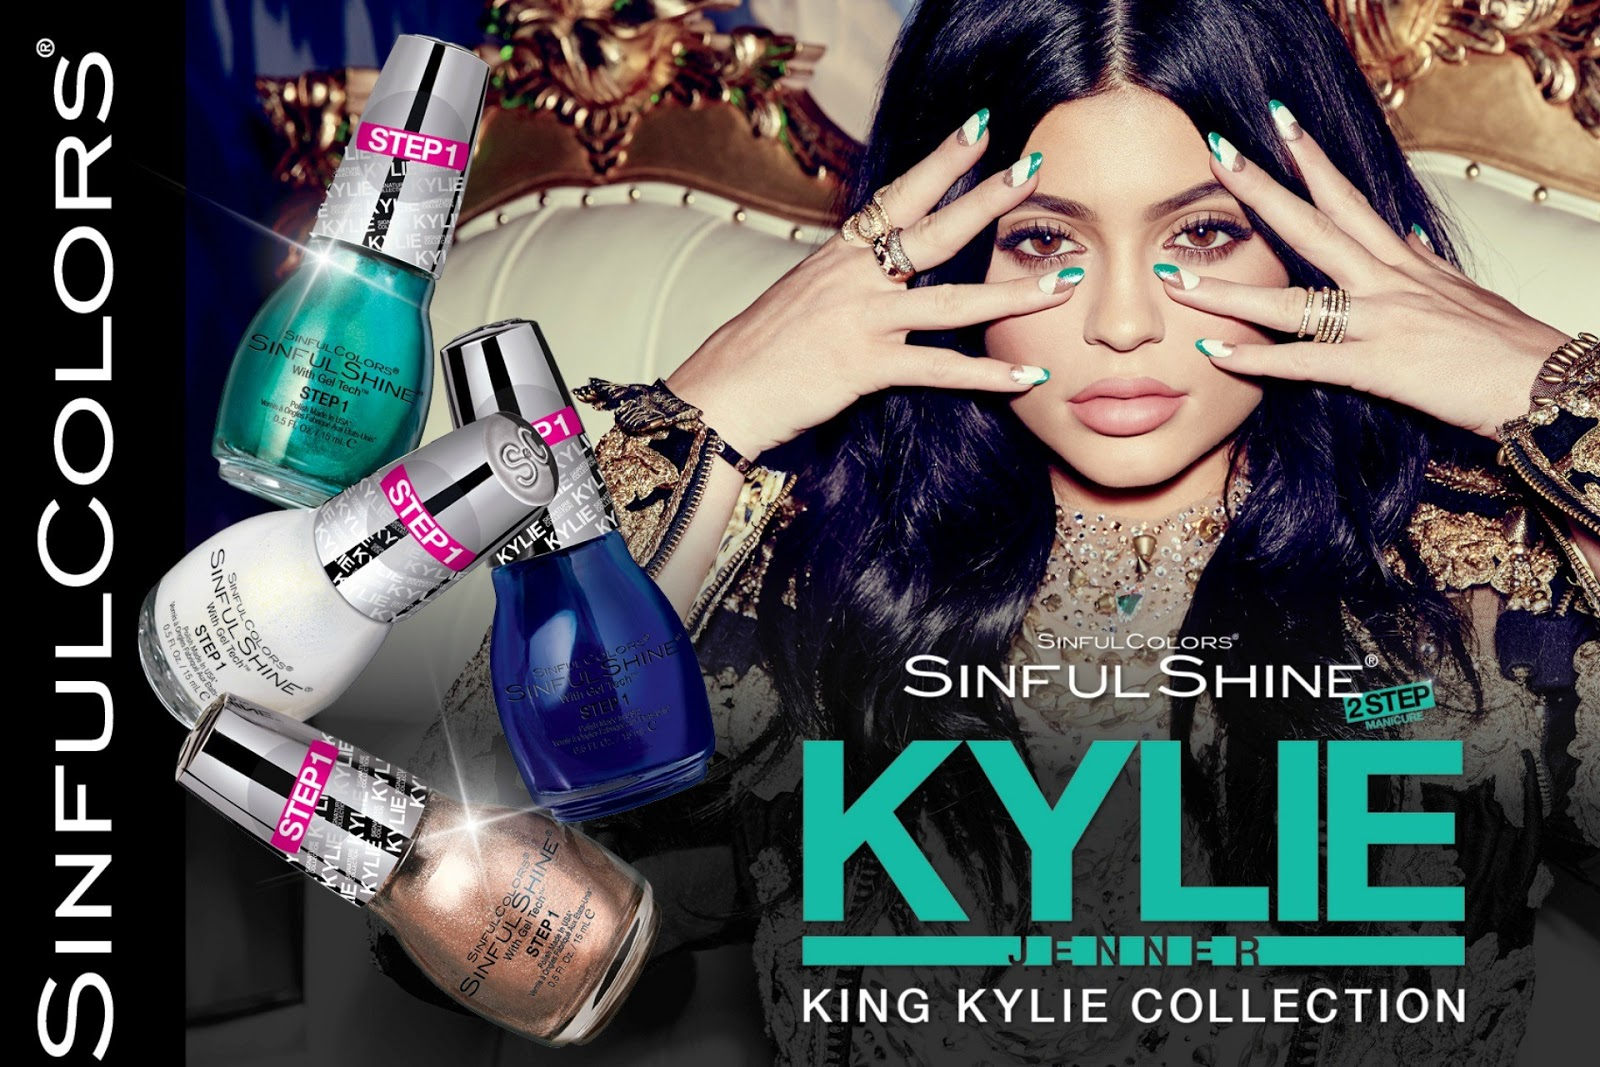 myacadaxtra: Kylie Jenner Launches New King Kylie Nail Polish ...